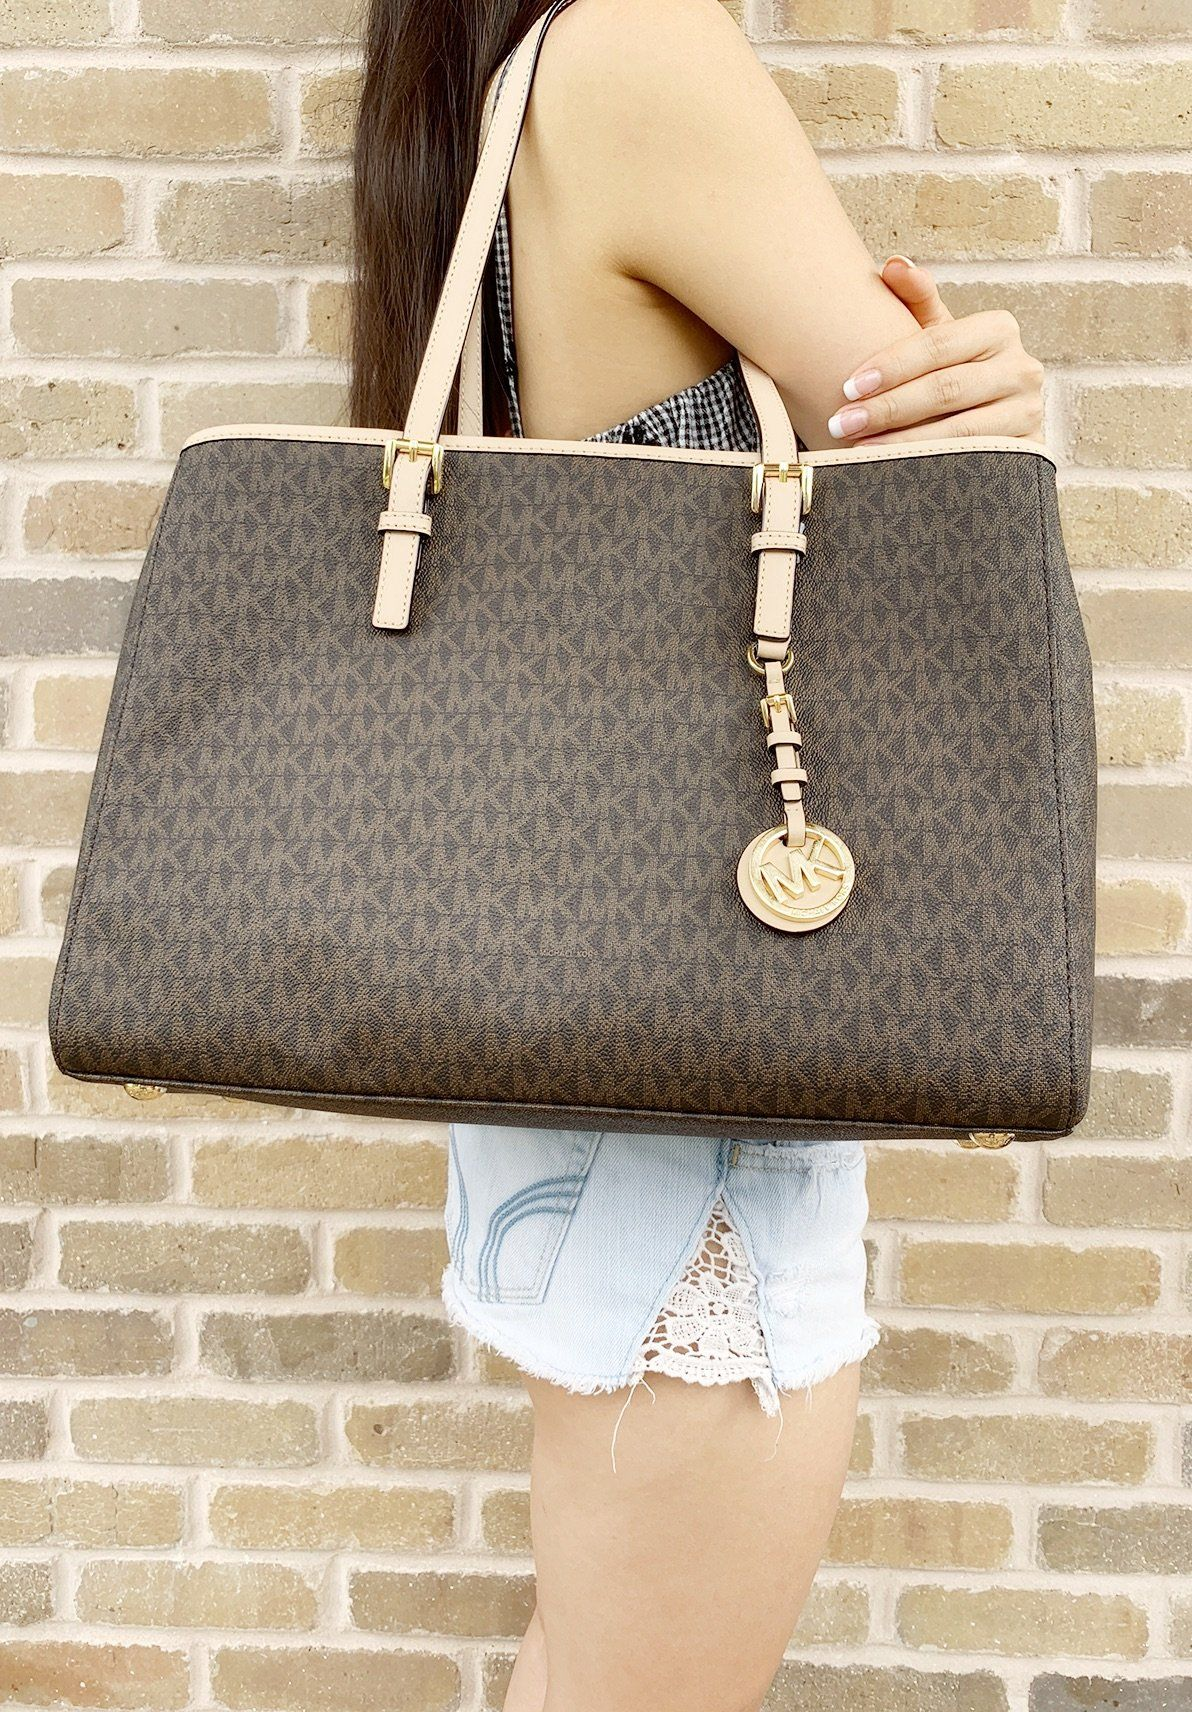 c09d2c494acea3 Too good not to share: Michael Kors Jet Set Large Tote Brown MK ...